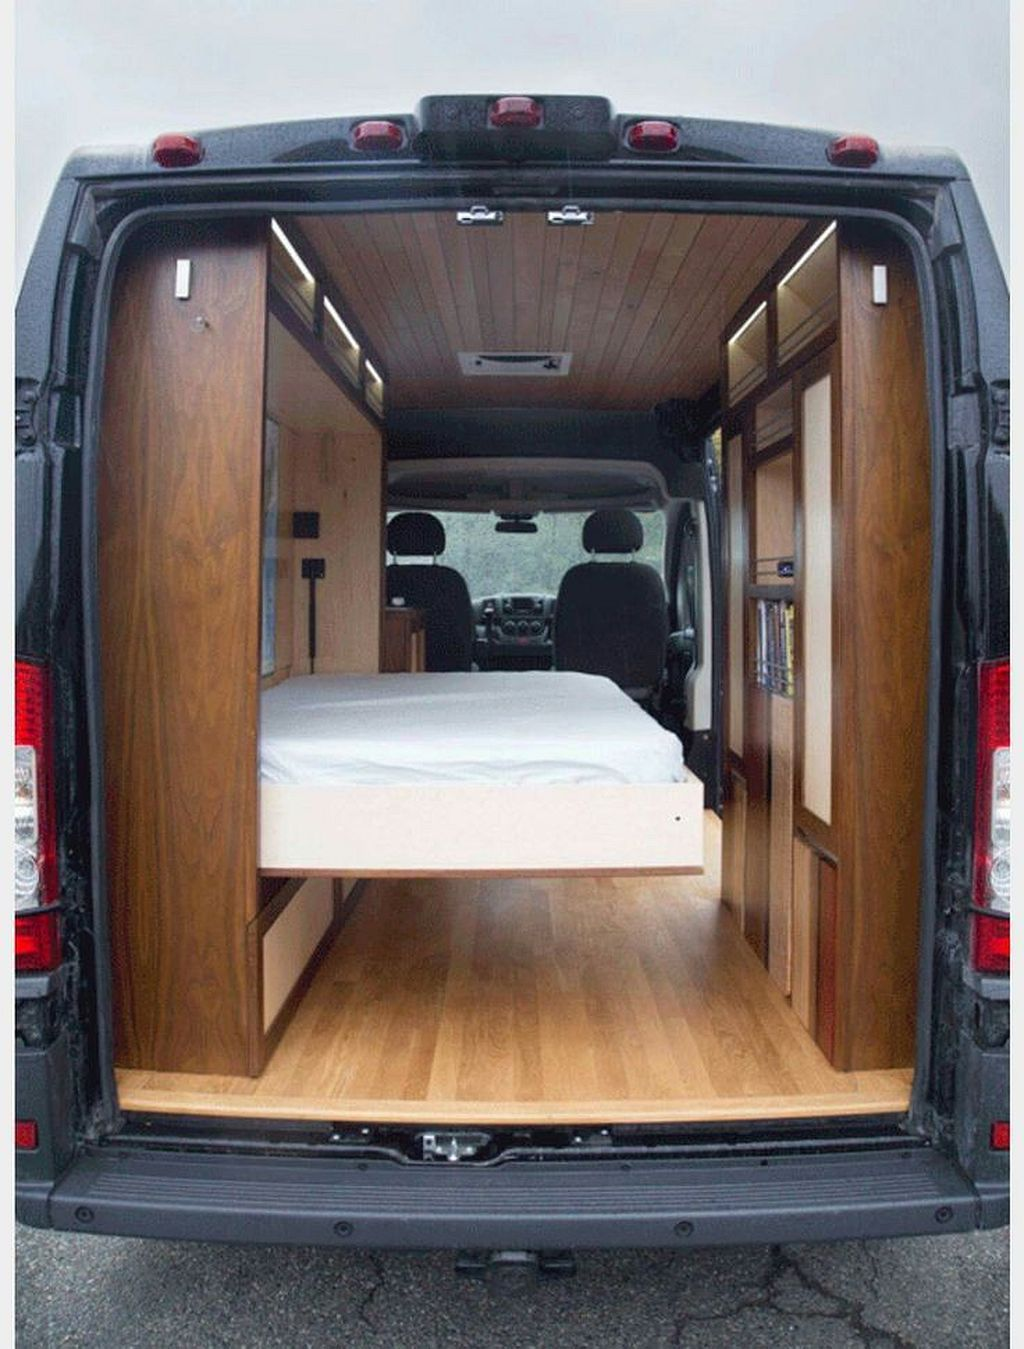 campervan bed design ideas 93 bed design vans and van life. Black Bedroom Furniture Sets. Home Design Ideas